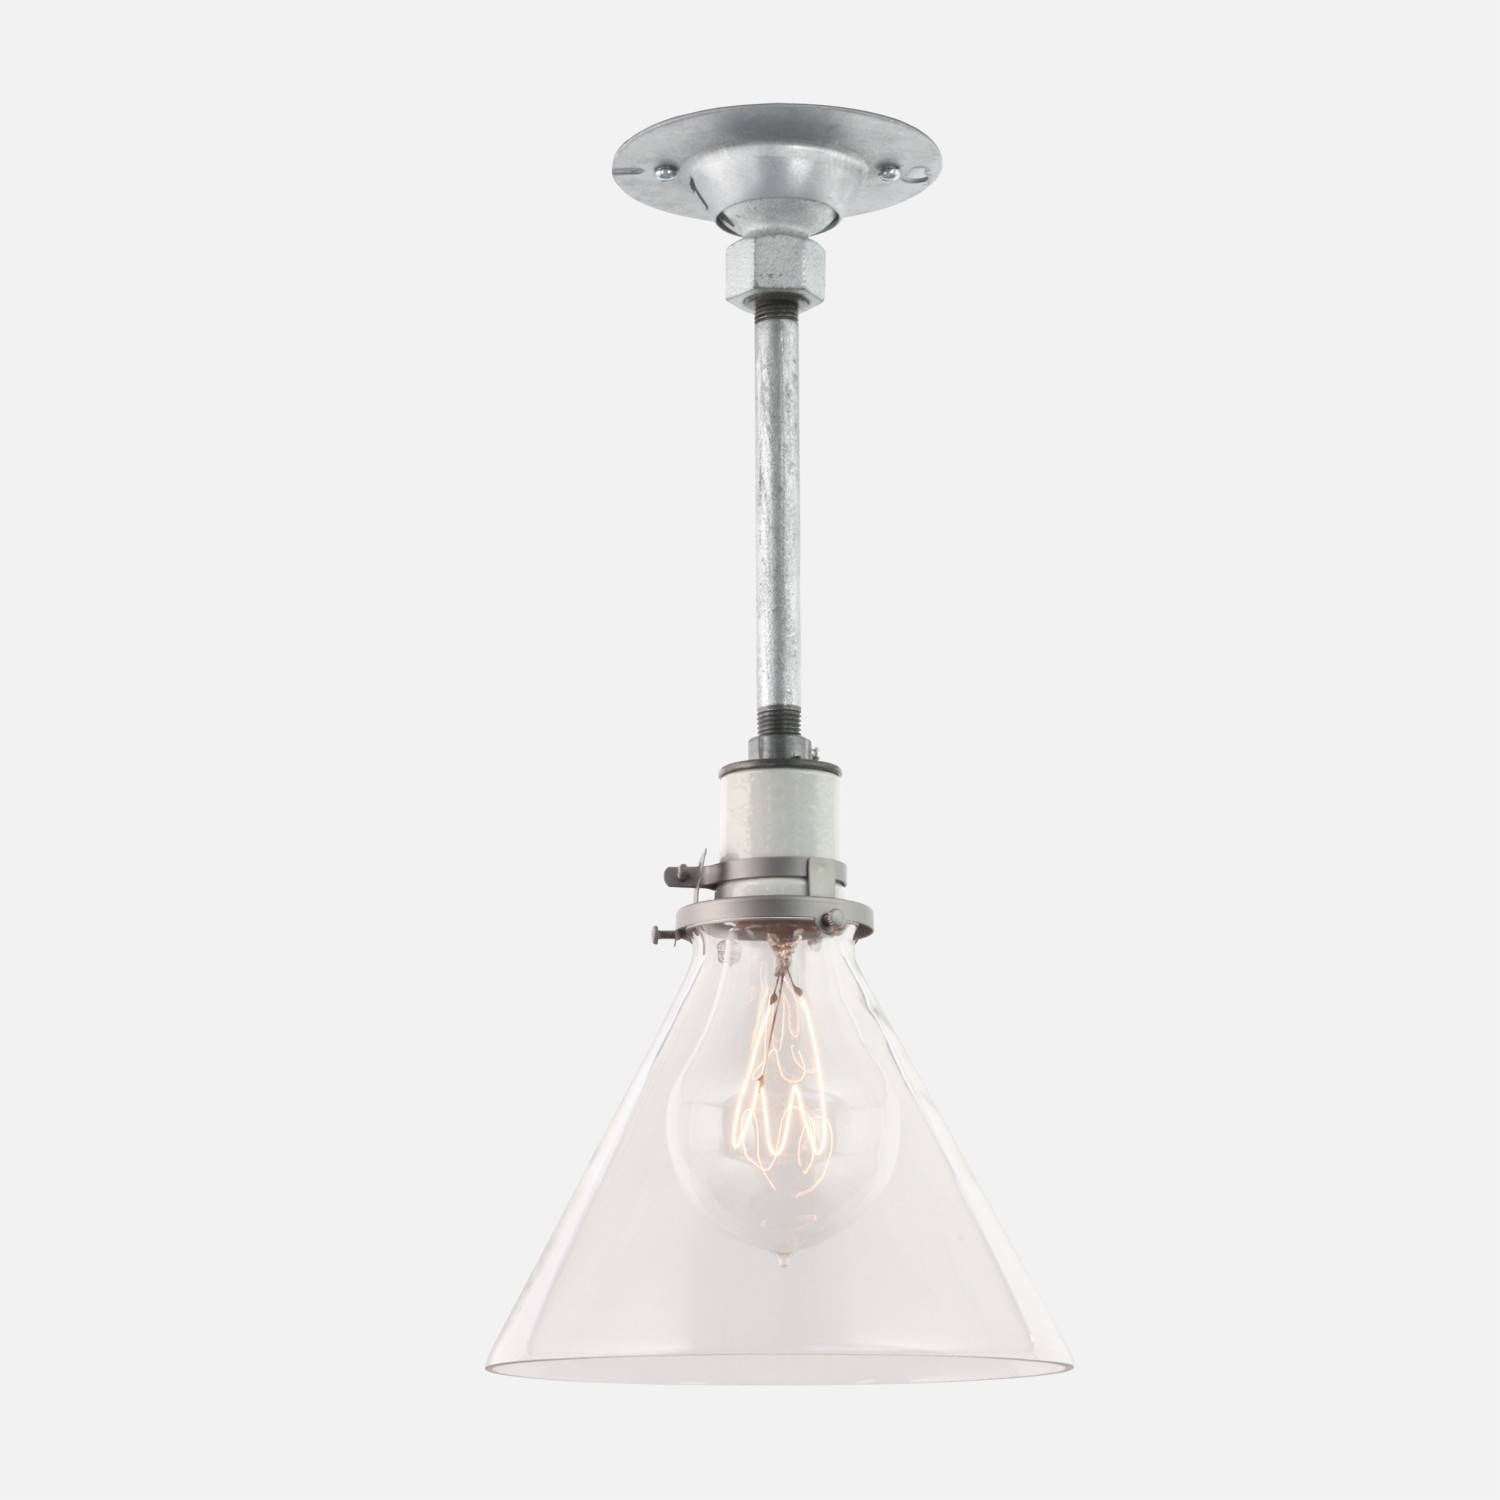 Various Screw In Pendant Light Fixture To Style The Lighting In Inside Screw In Pendant Lights Fixtures (View 9 of 15)